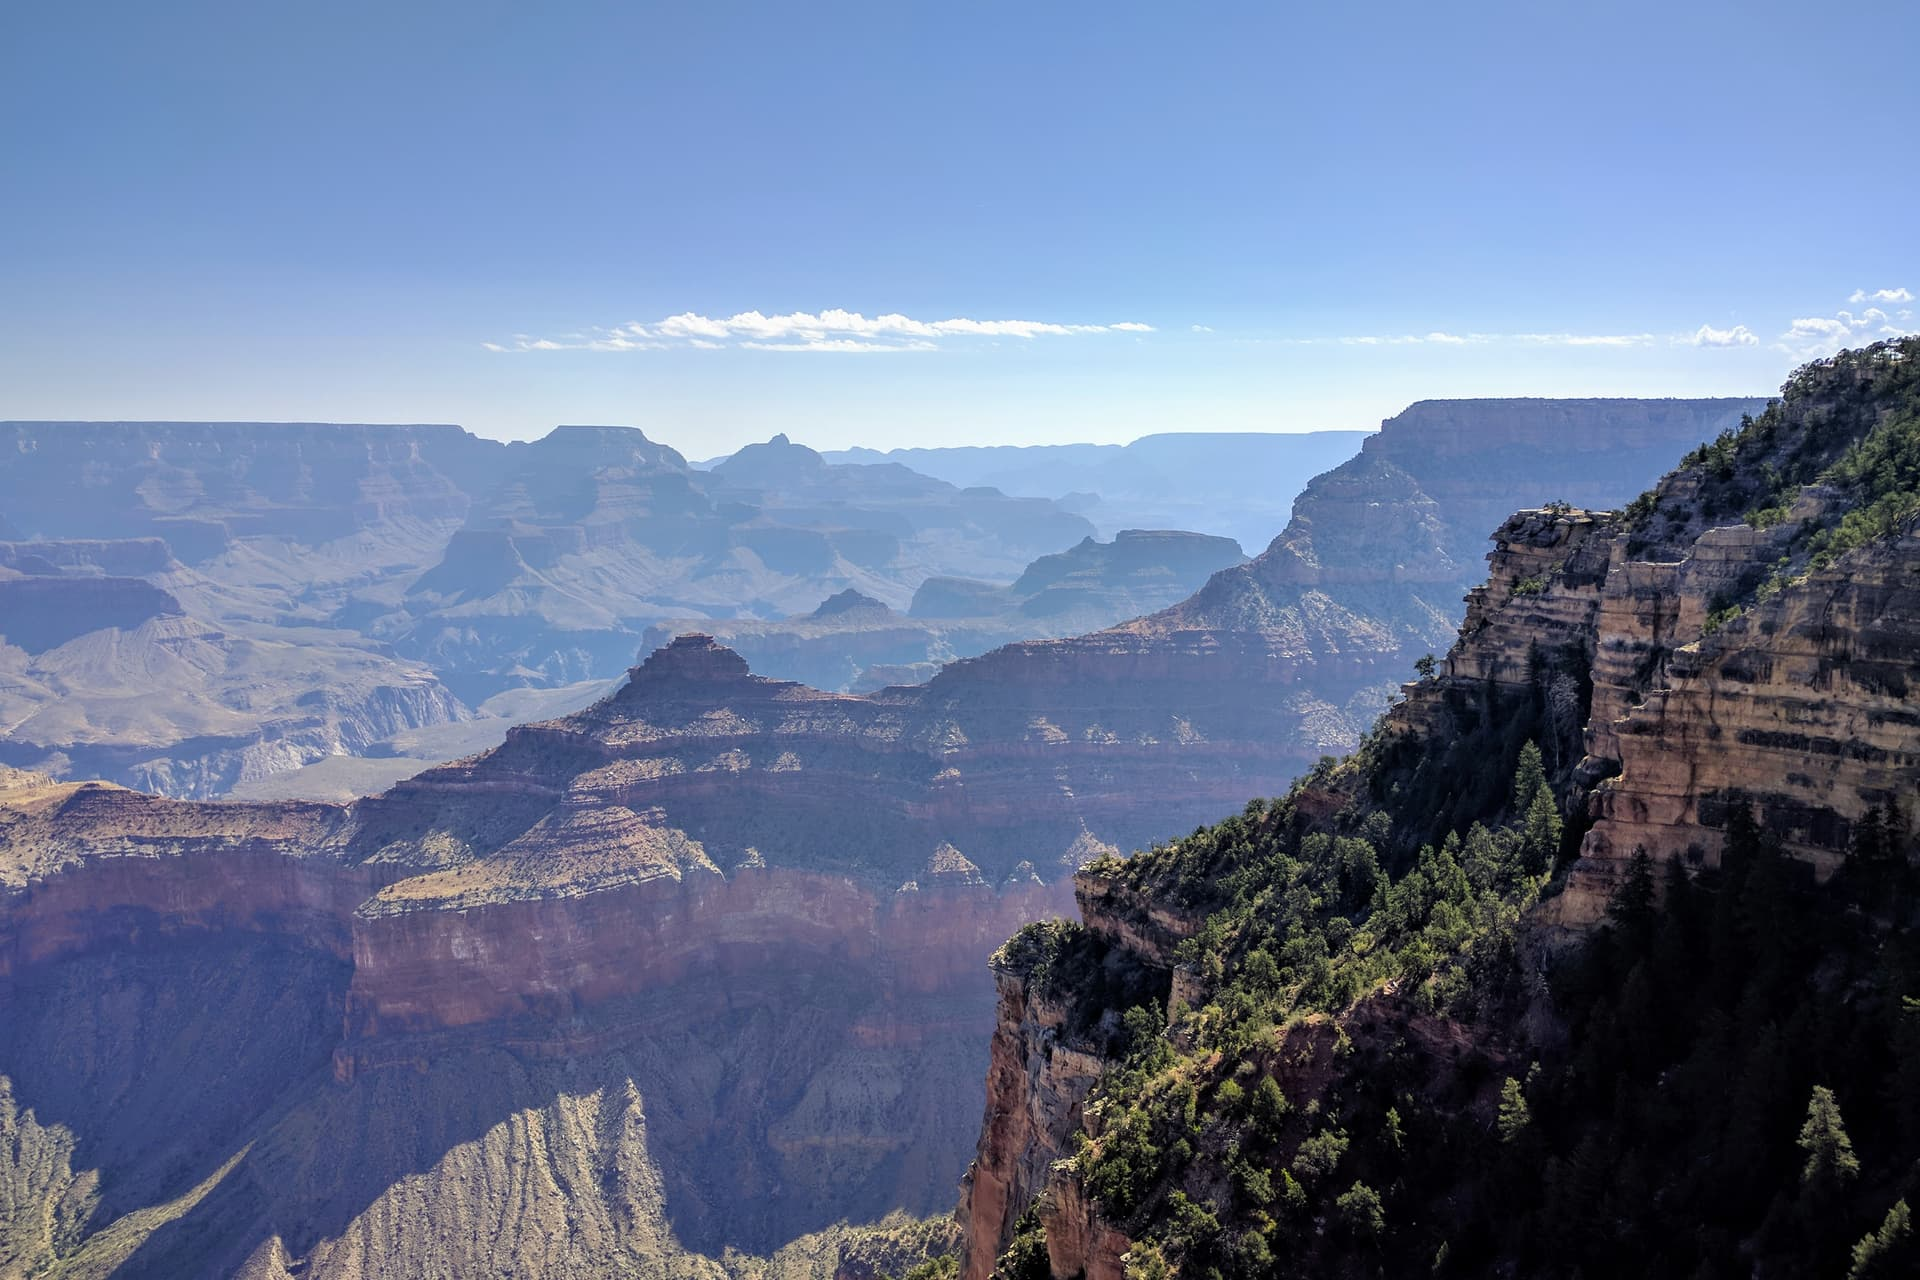 A view across the Grand Canyon. Morning fog partially obscurs the far side. In the foreground, part of the South Rim falls away into the Canyon in a series of steep terraces. Pine trees cover its terraces and slopes.